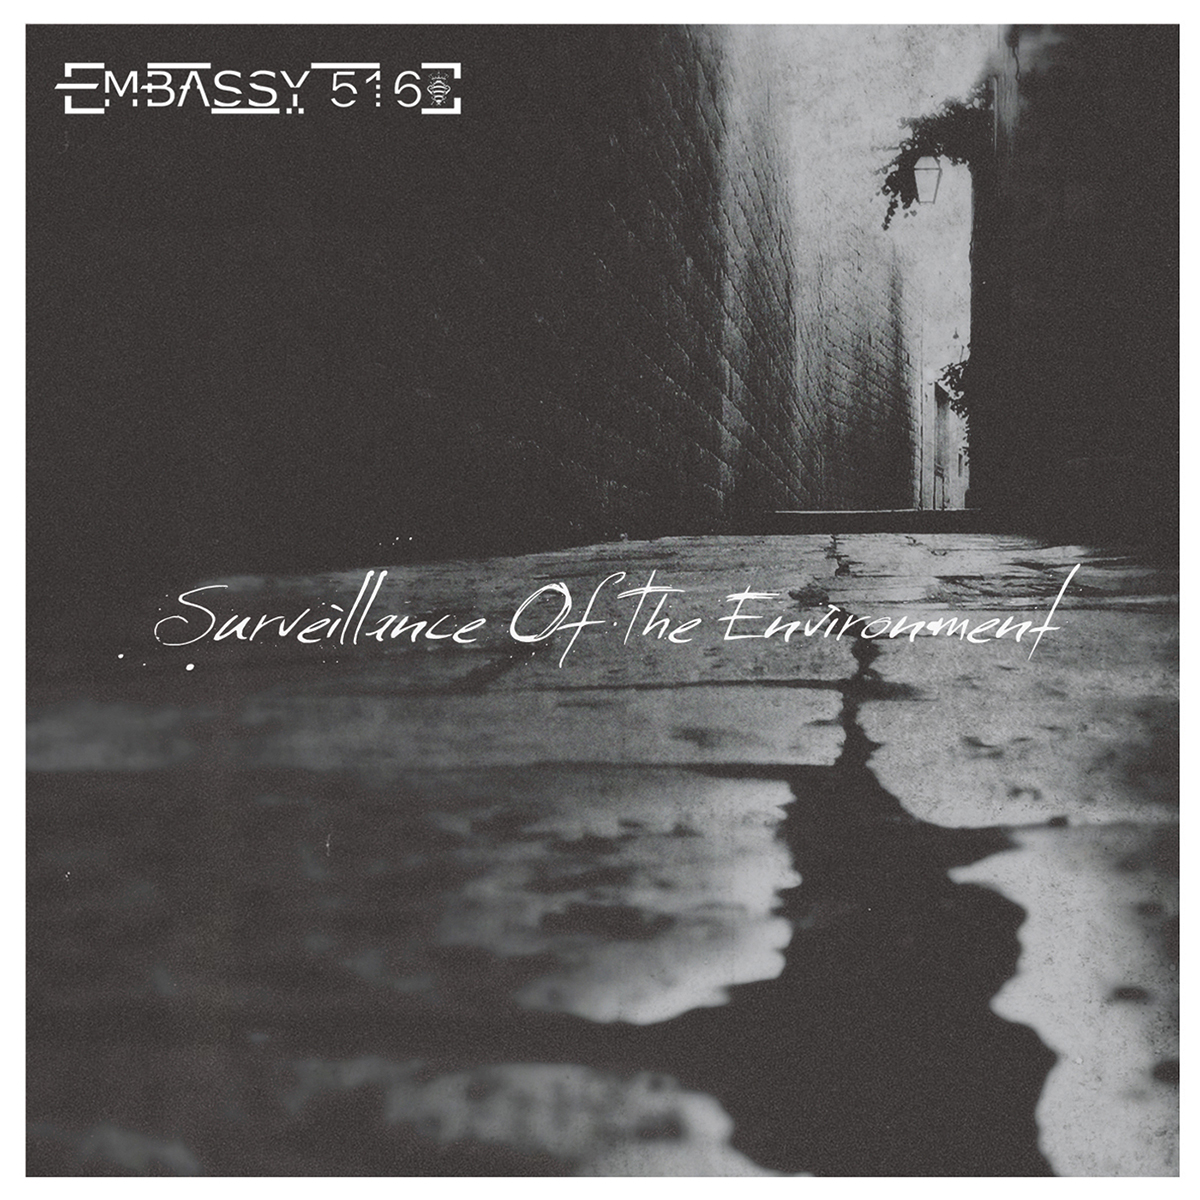 EMBASSY 516 - Surveillance of the Environment